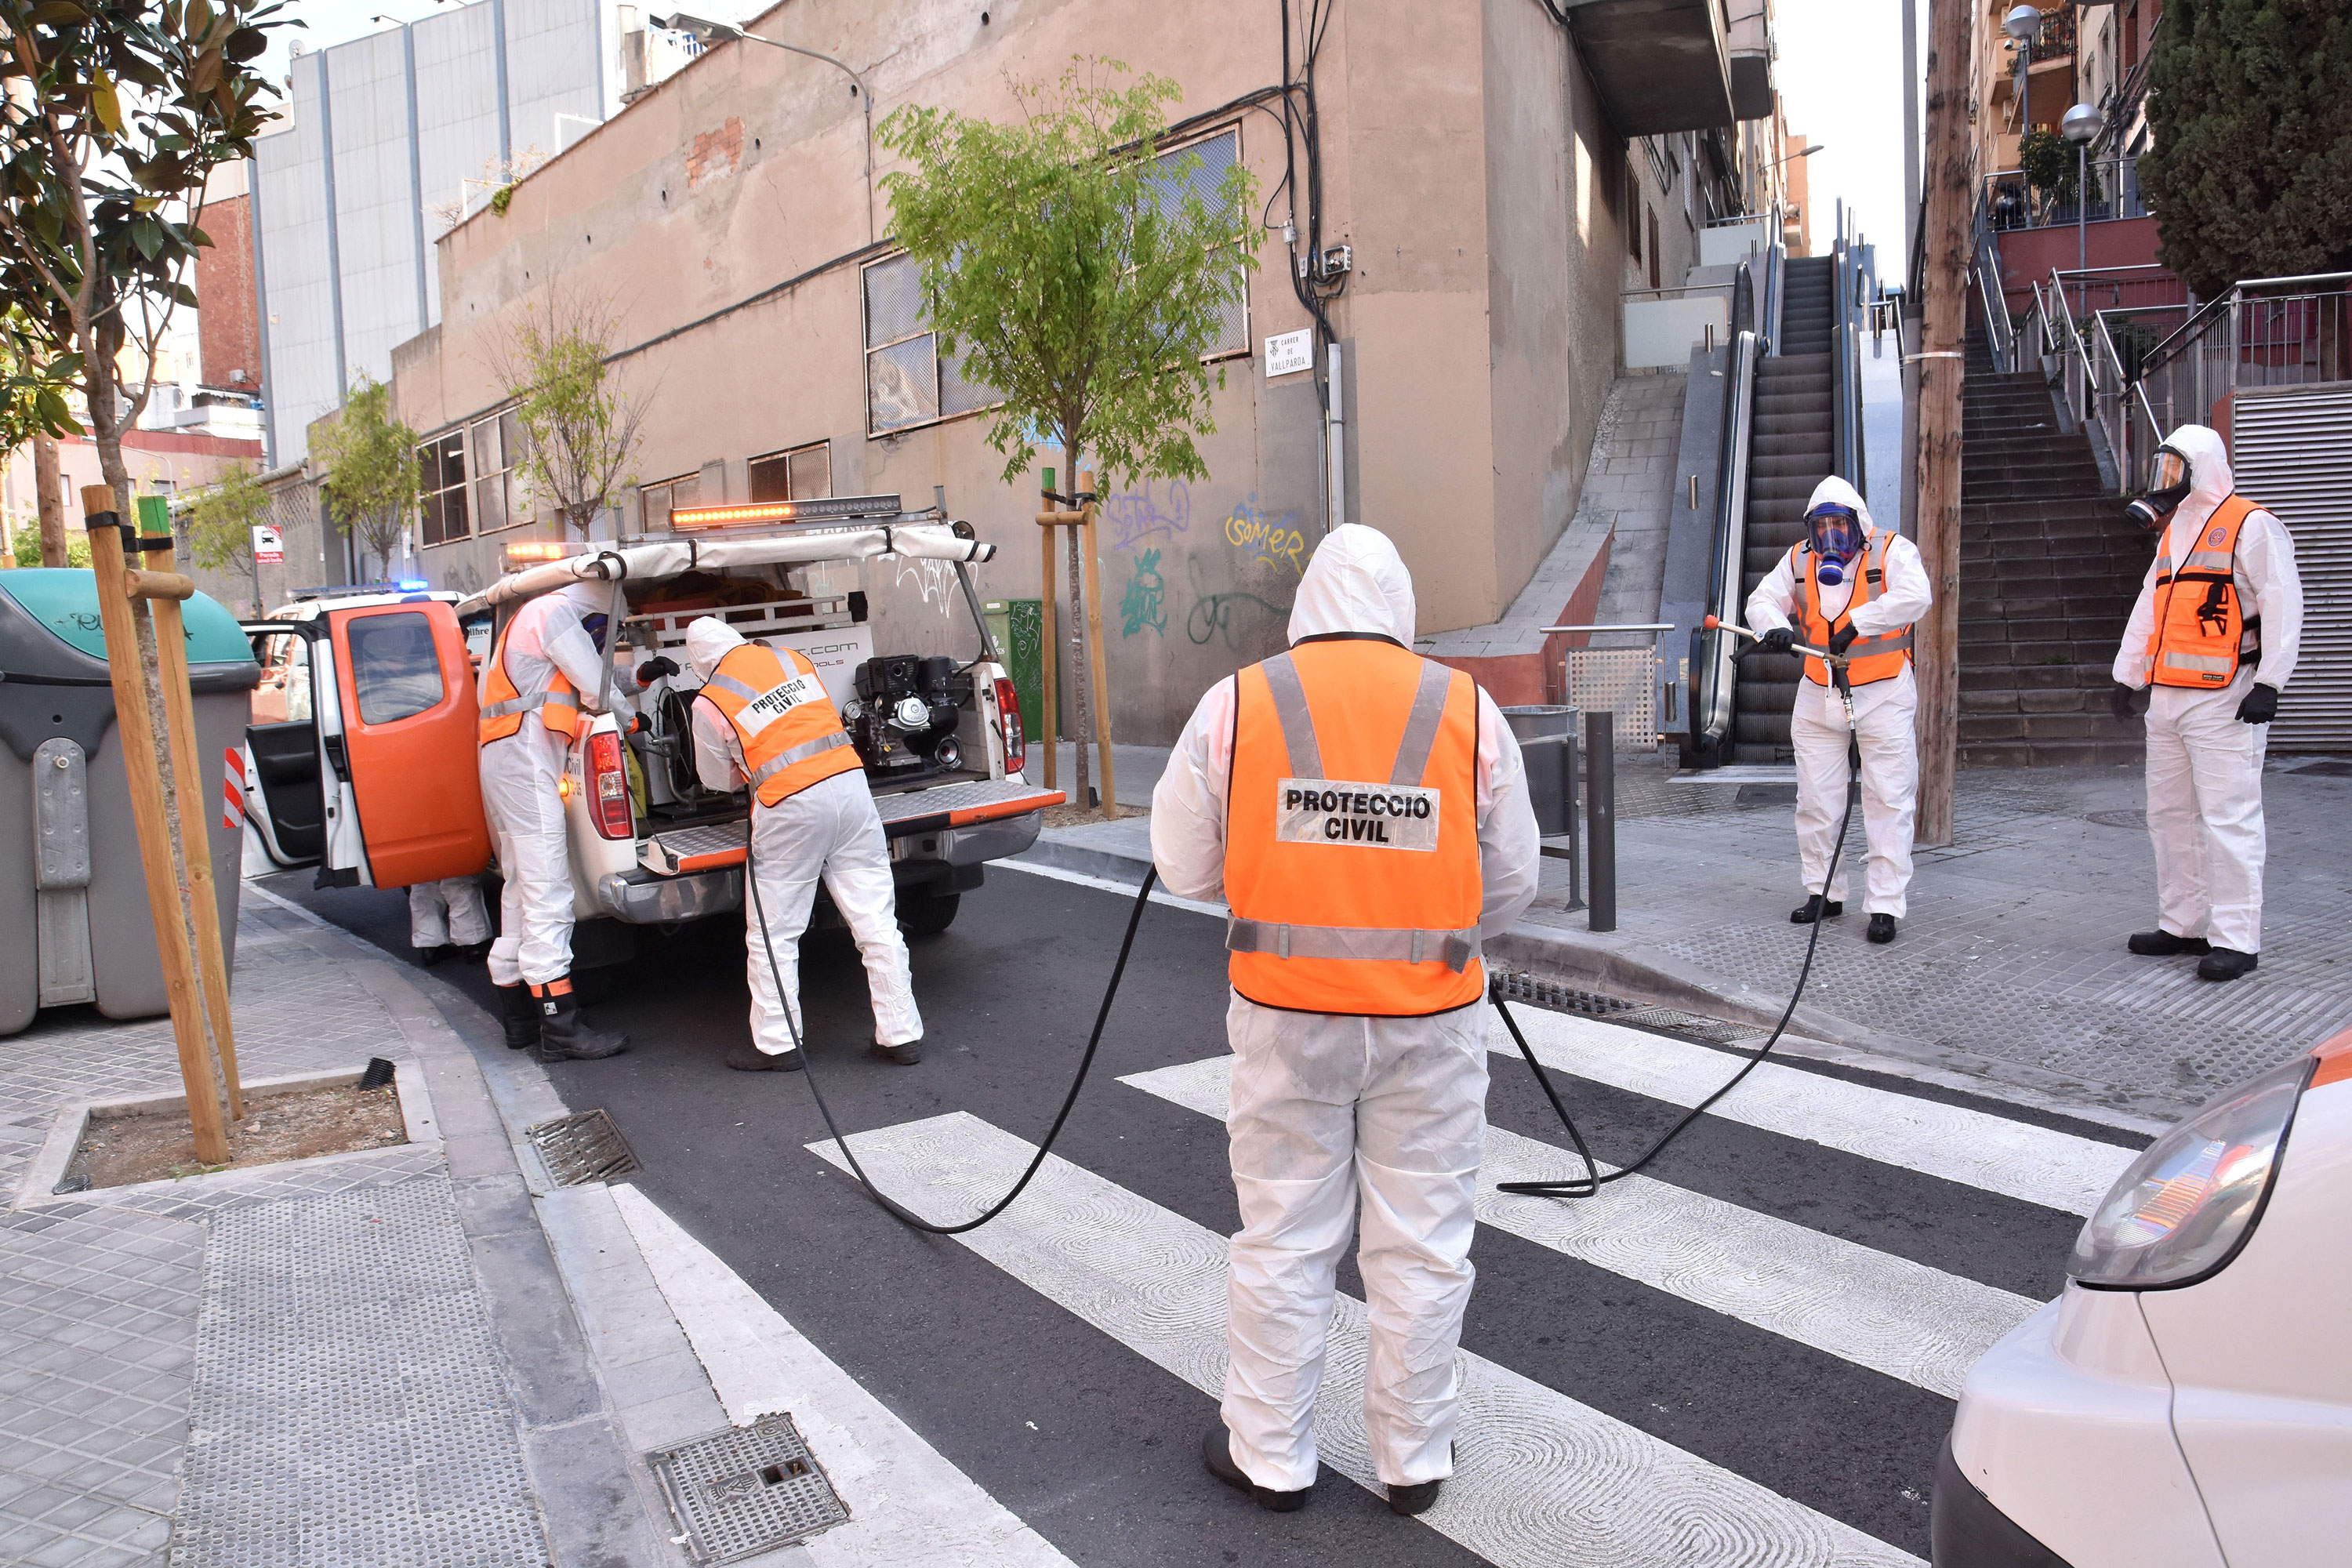 A group of civil protection volunteers from disinfects a street in L´Hospitalet, Spain, on March 27.